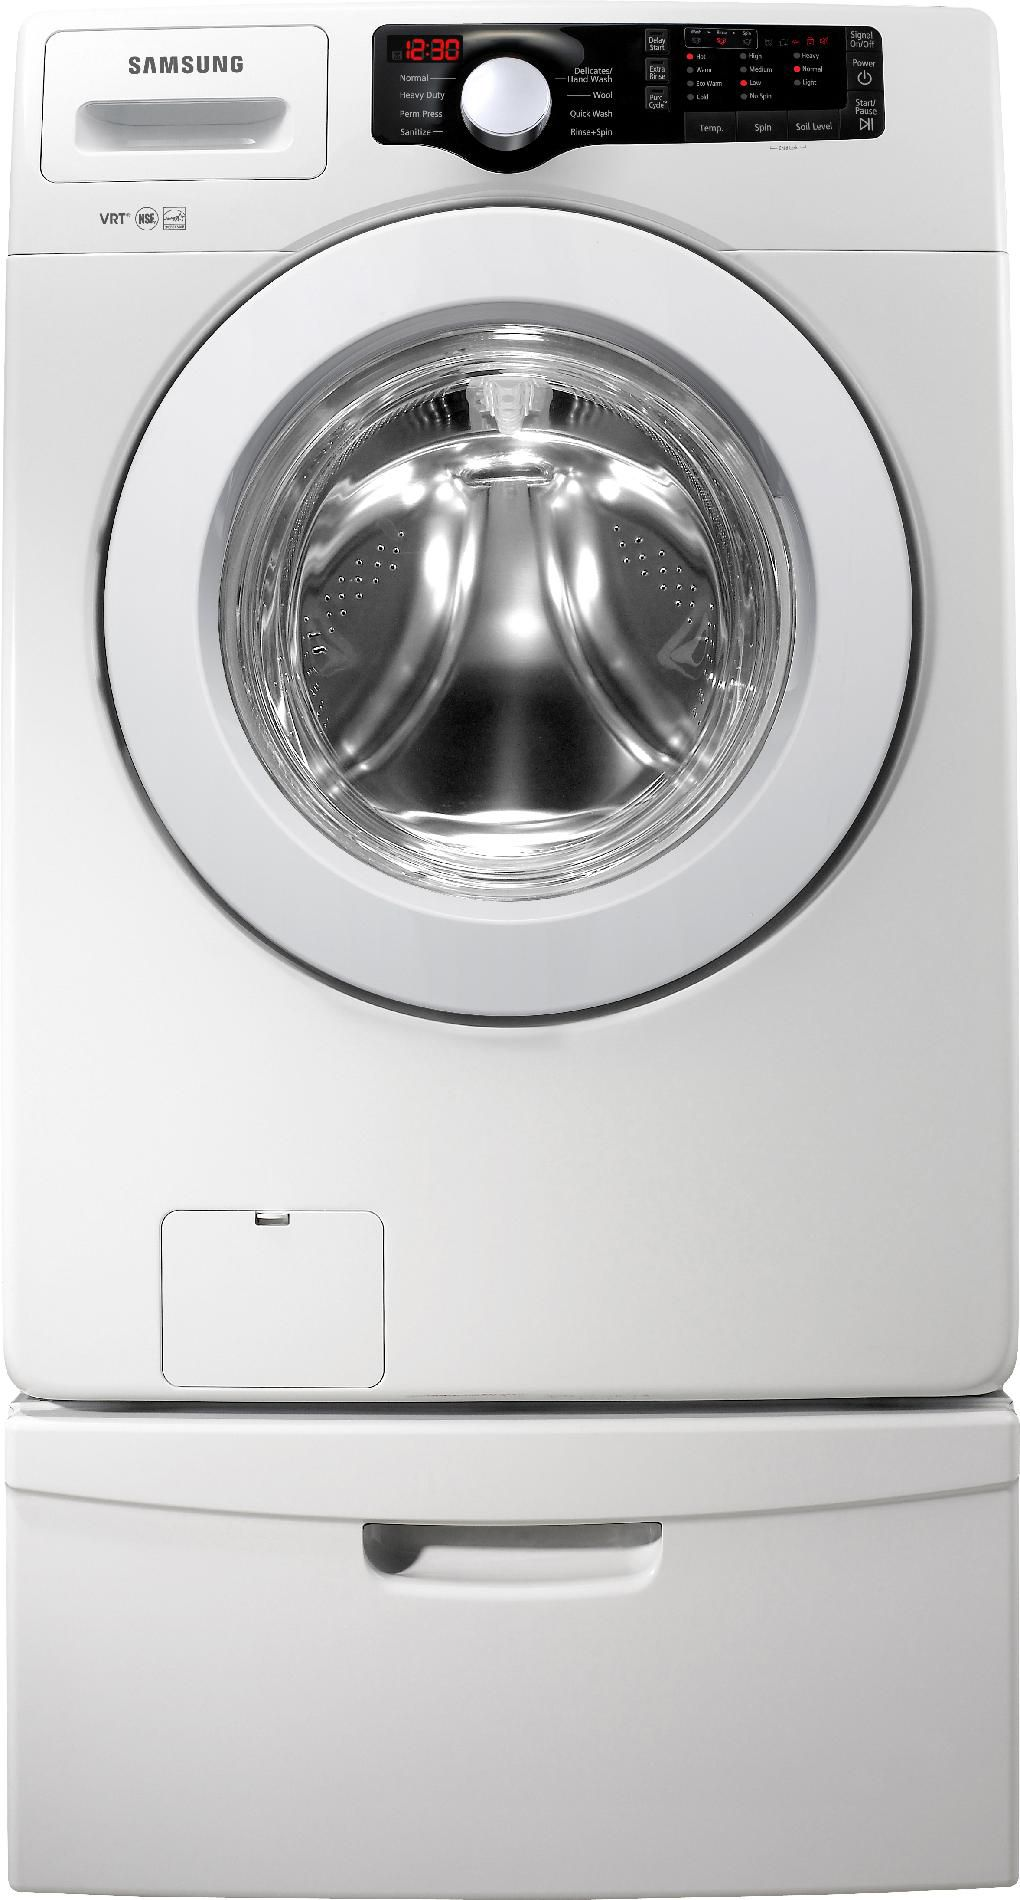 Samsung 3.6 cu. ft. Front-Load Washer - White